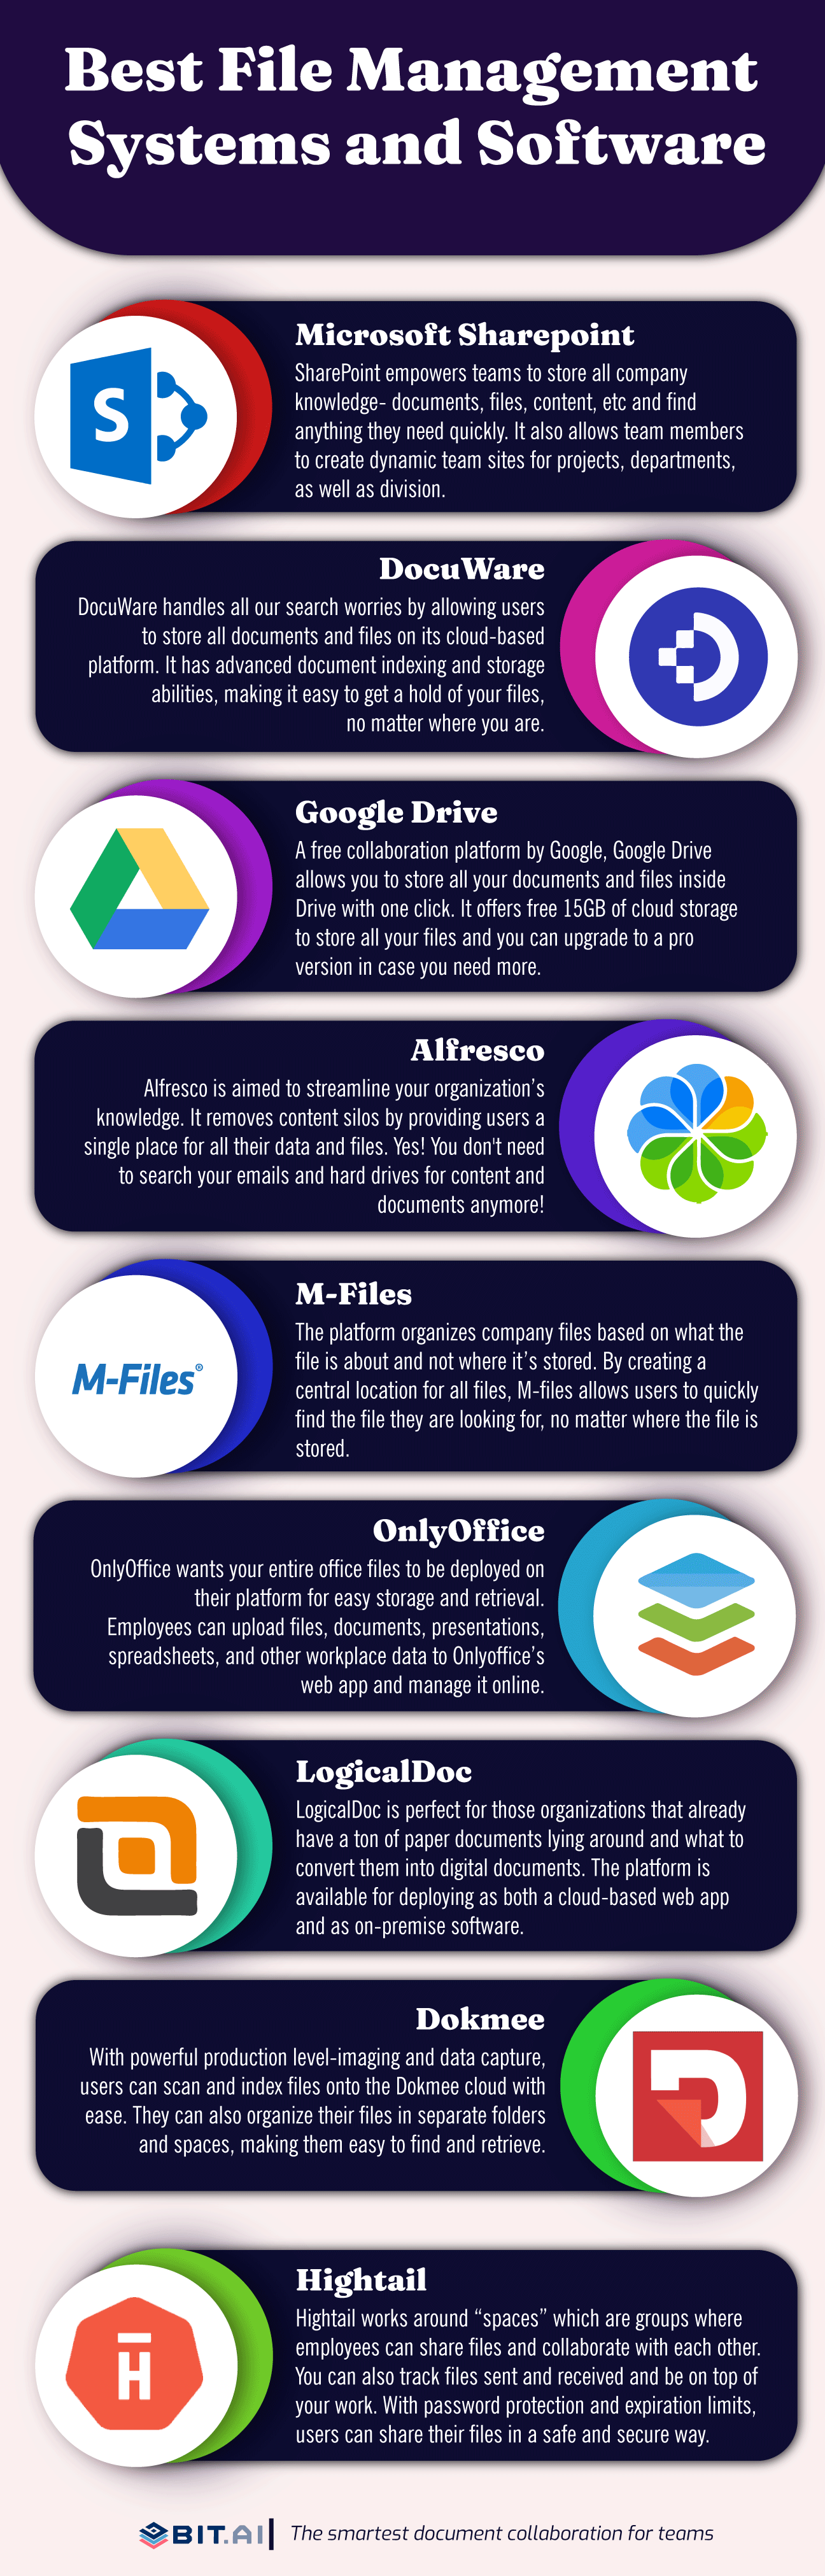 File management systems and software infographic